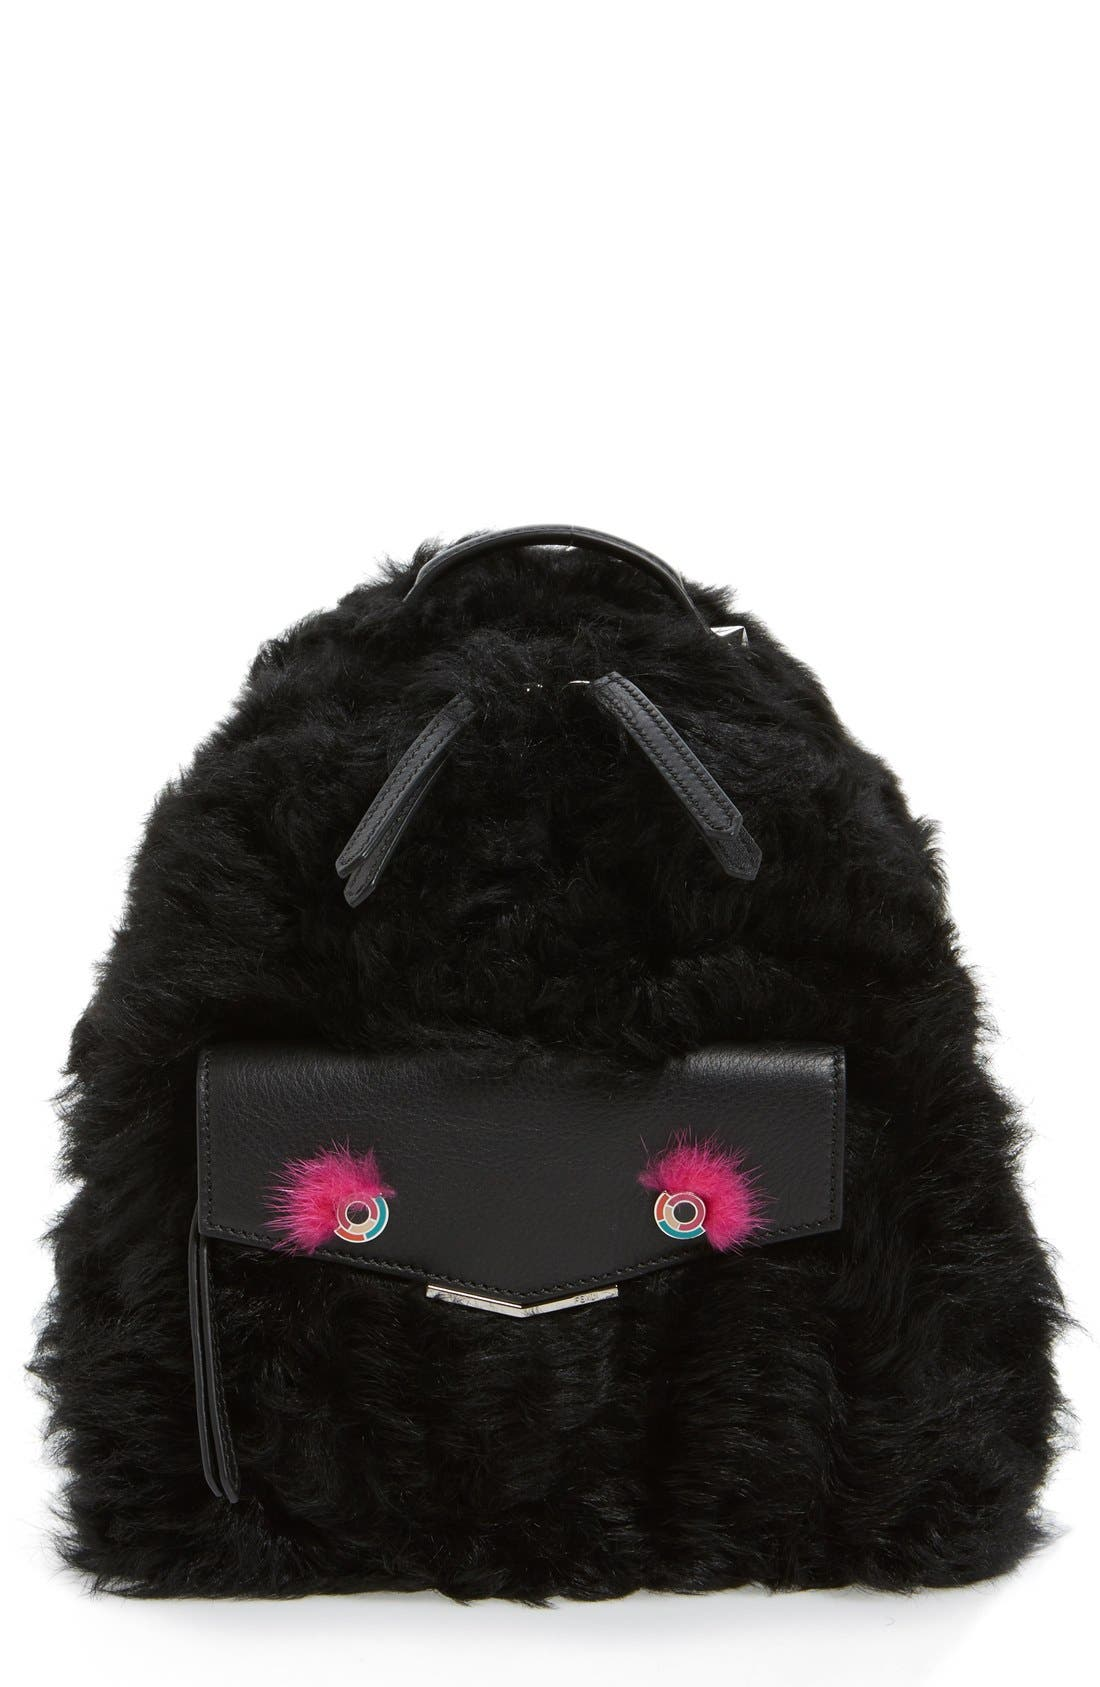 'Mini Monster' Genuine Shearling & Genuine Mink Fur Backpack,                         Main,                         color, Black/ Fuchsia / Palladium